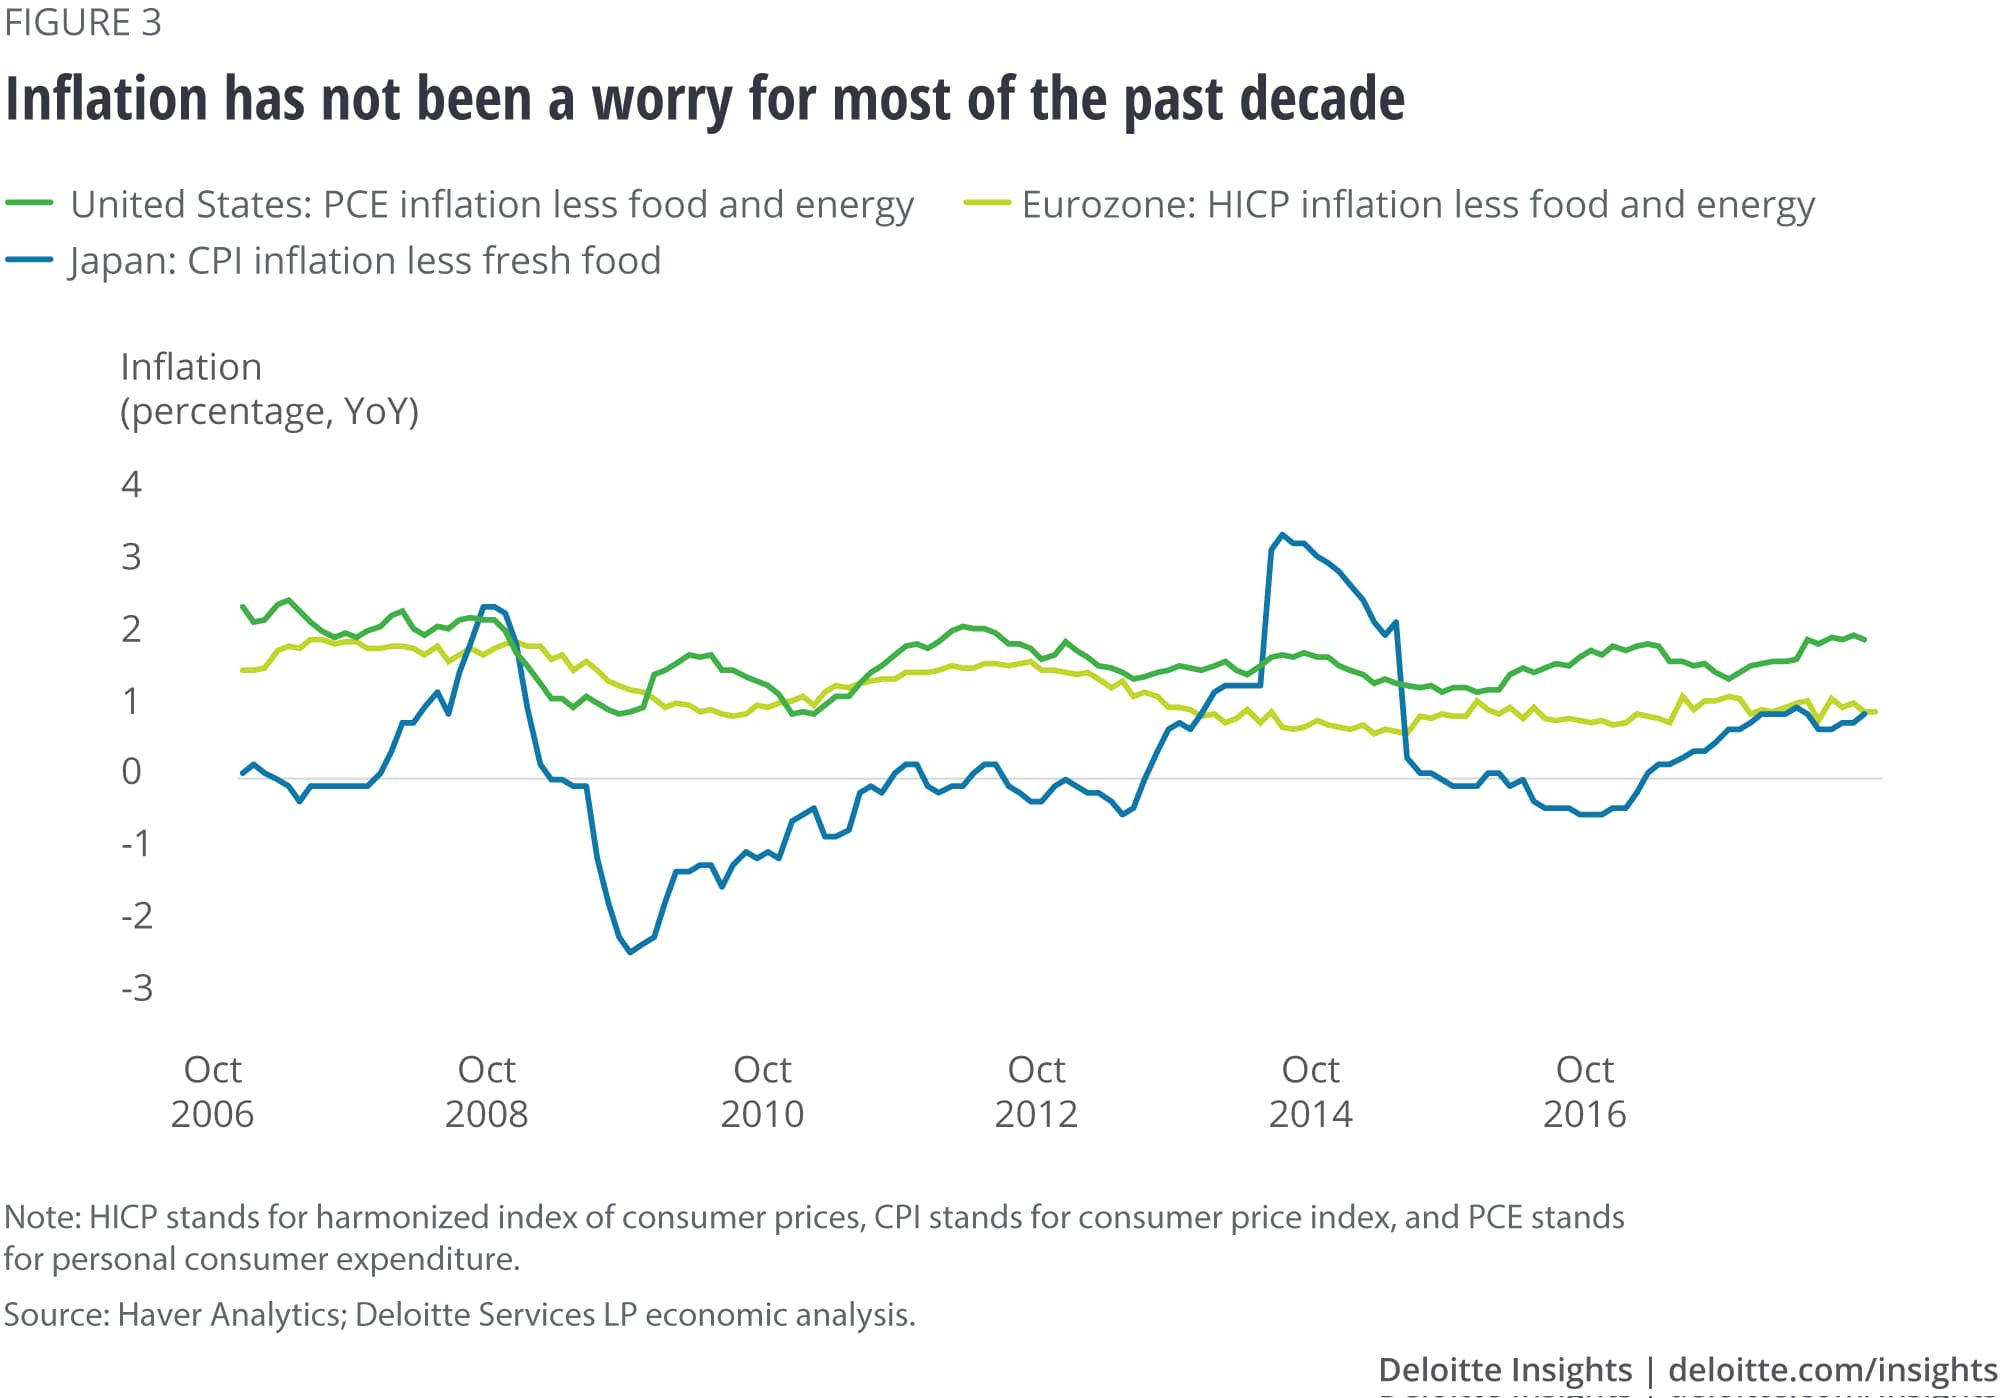 Inflation has not been a worry for most of the past decade